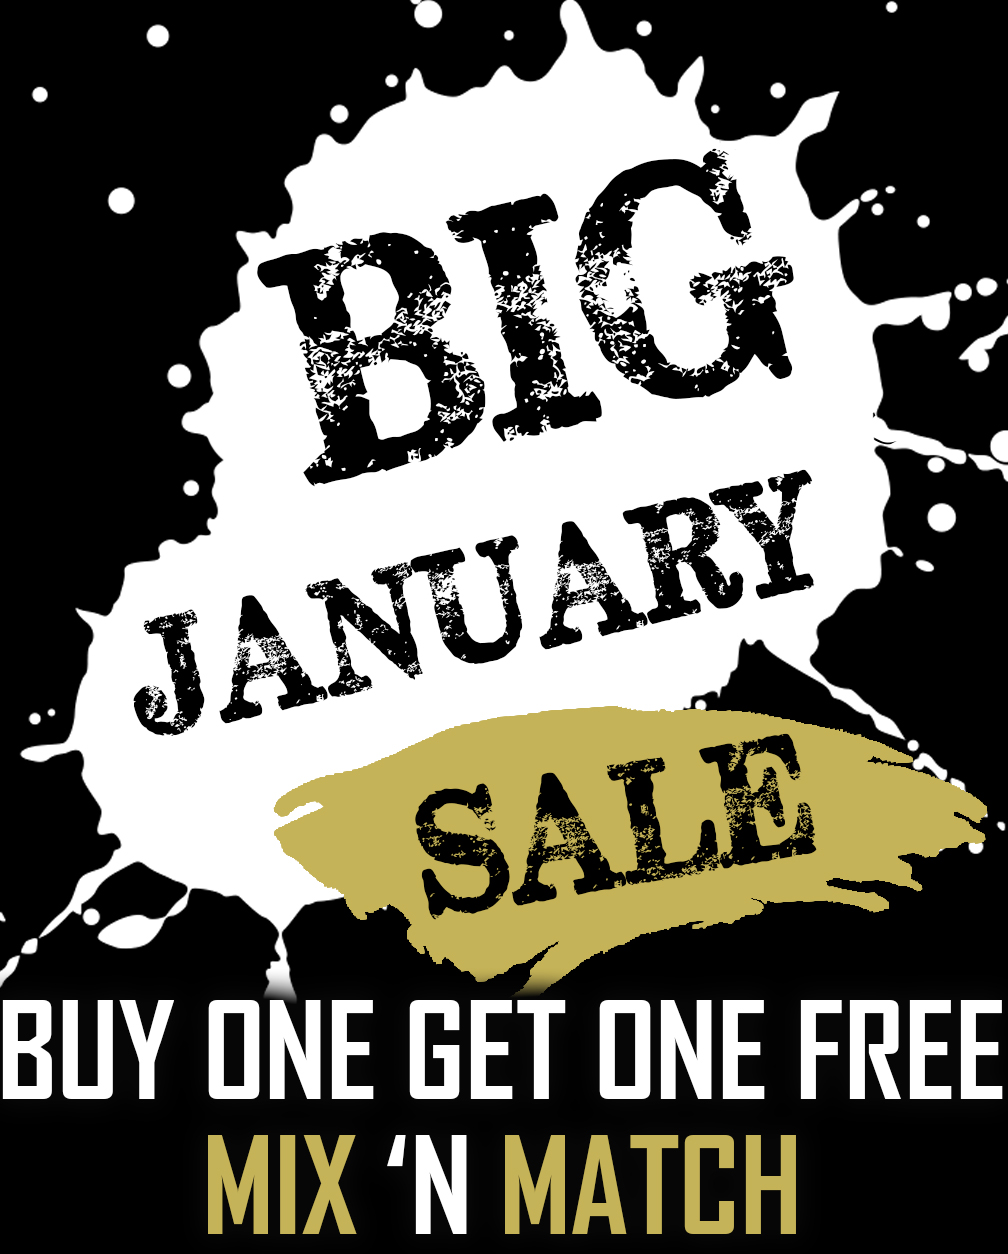 big-january-sale-buy-one-get-one-free.jpg